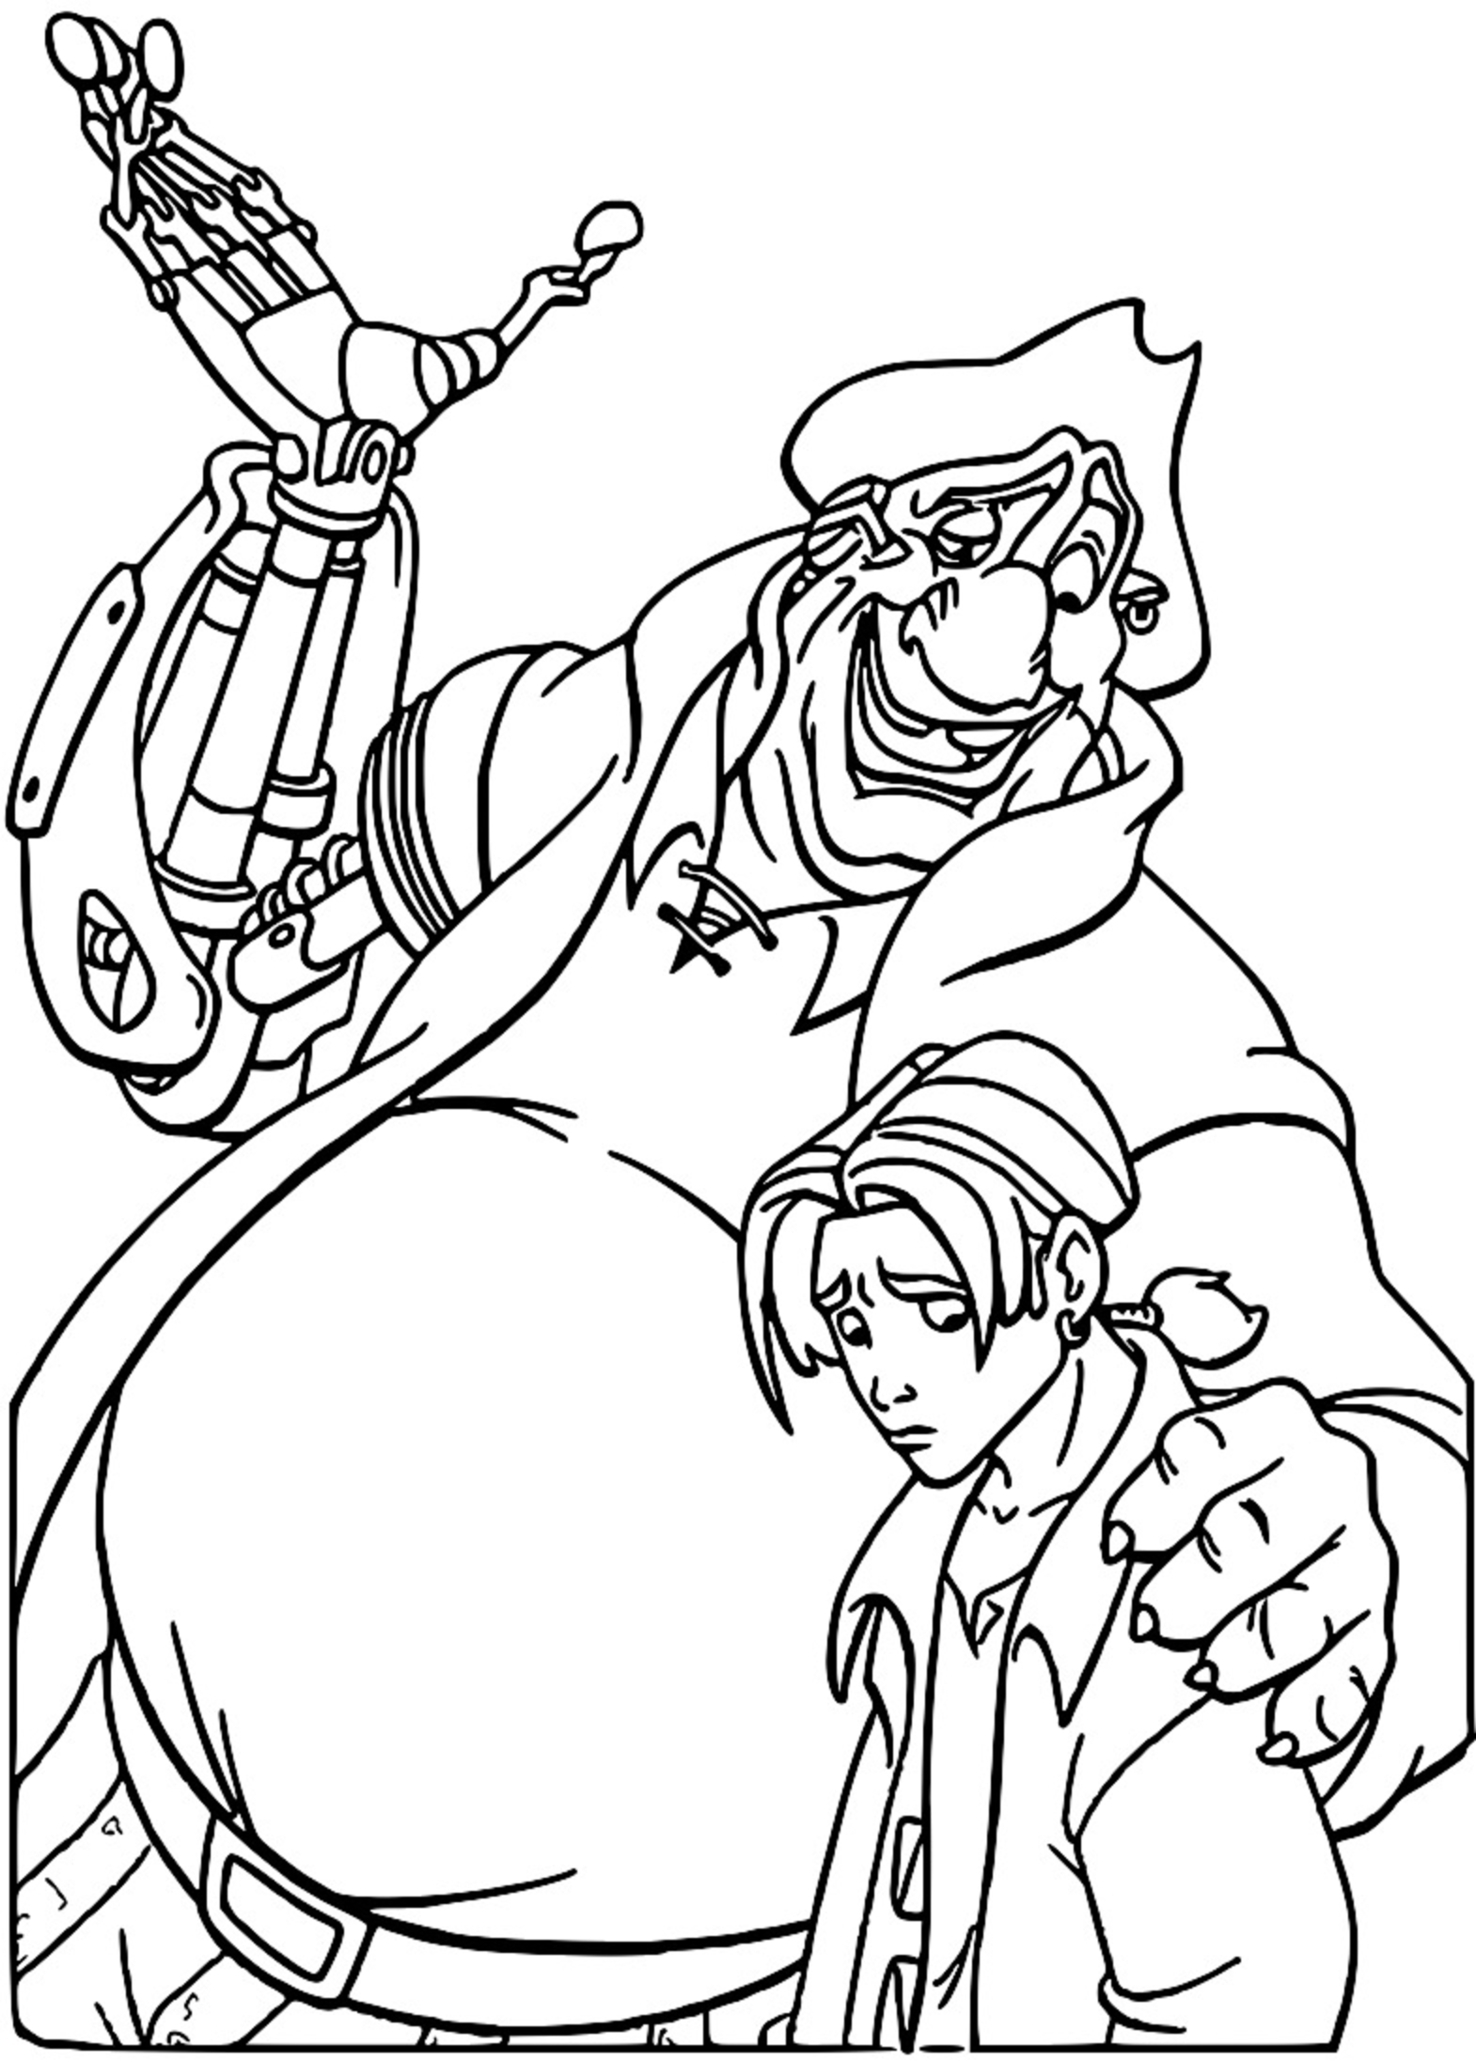 Treasure Planet im43 Coloring Pages_Cartoonized